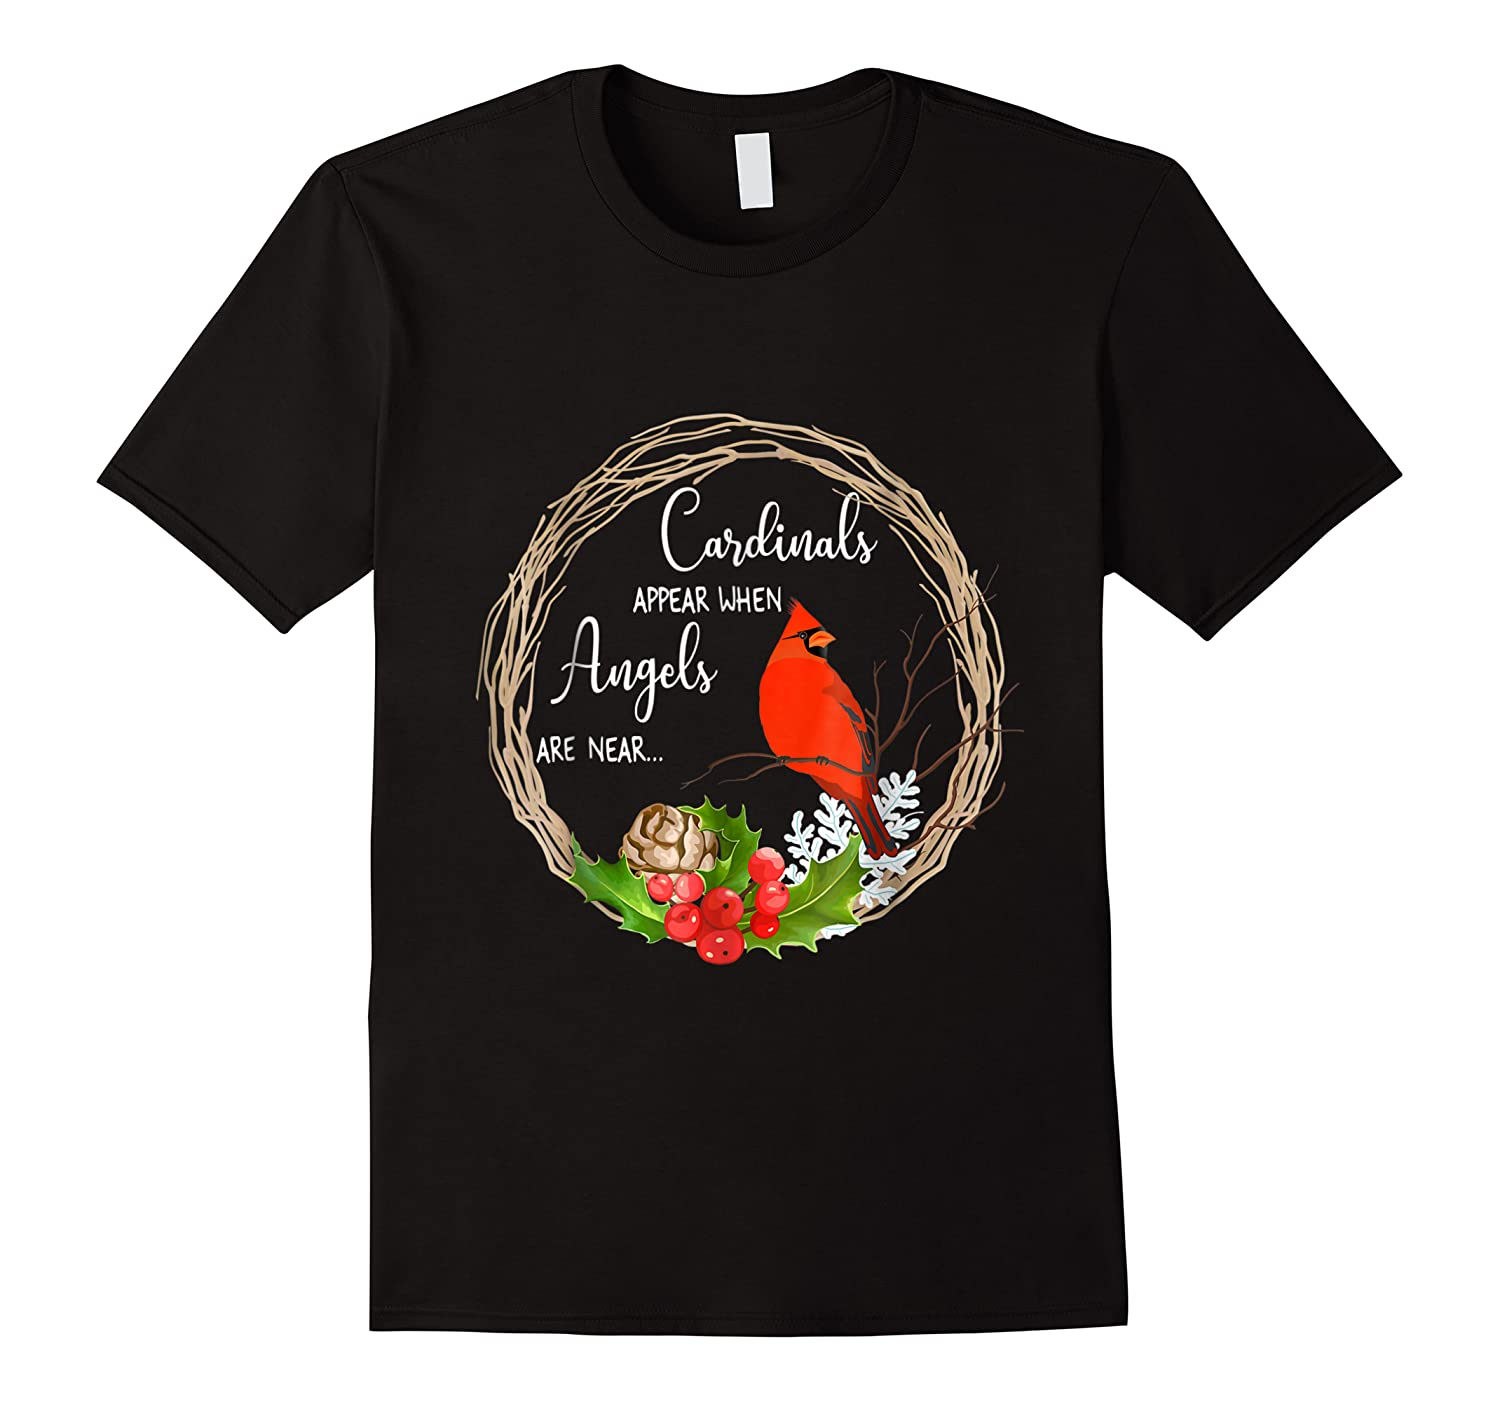 Cardinals Appear When Angels Are Near Birds Shirts